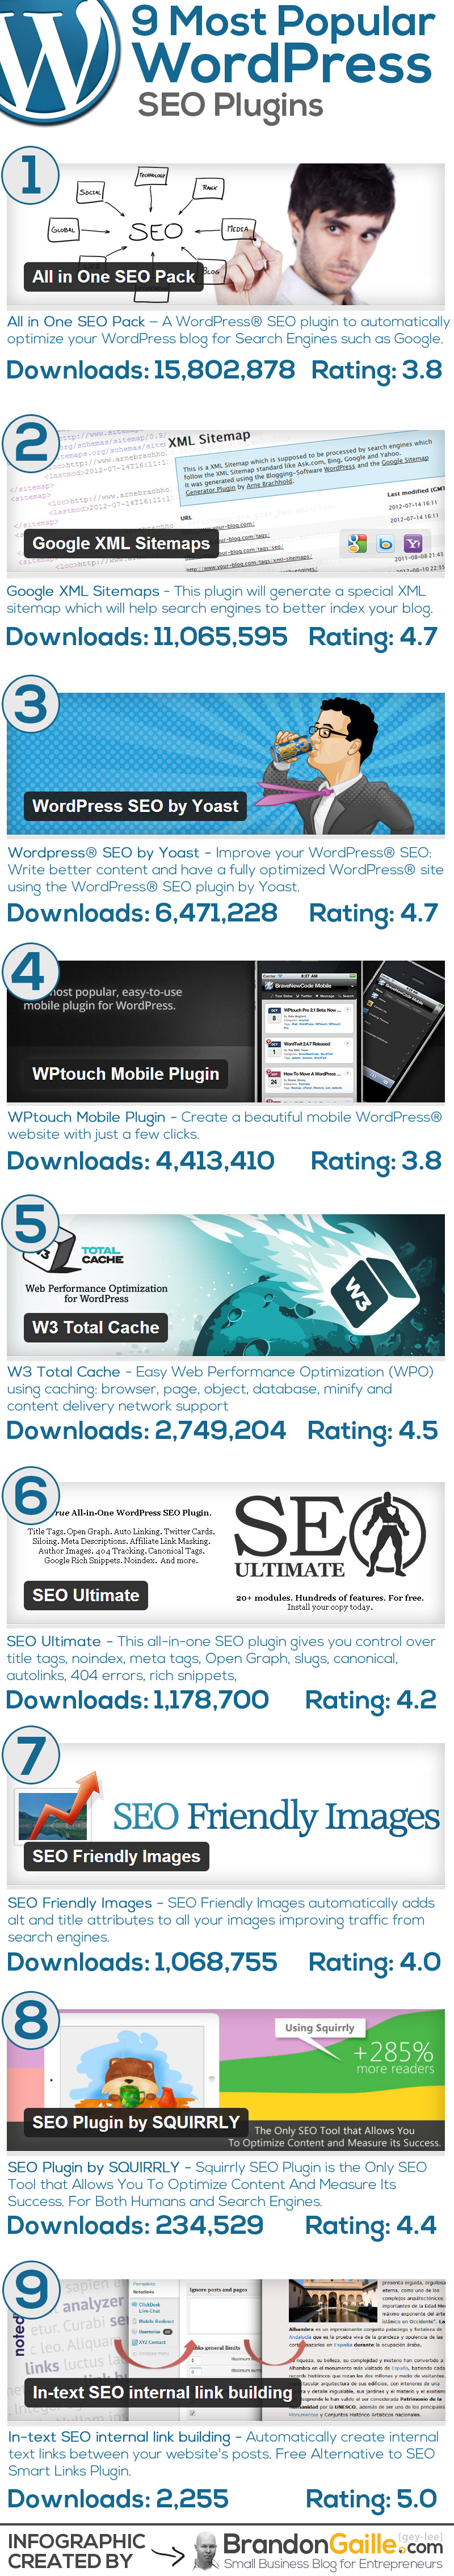 Best-Wordpress-SEO-Plugins-Infographic